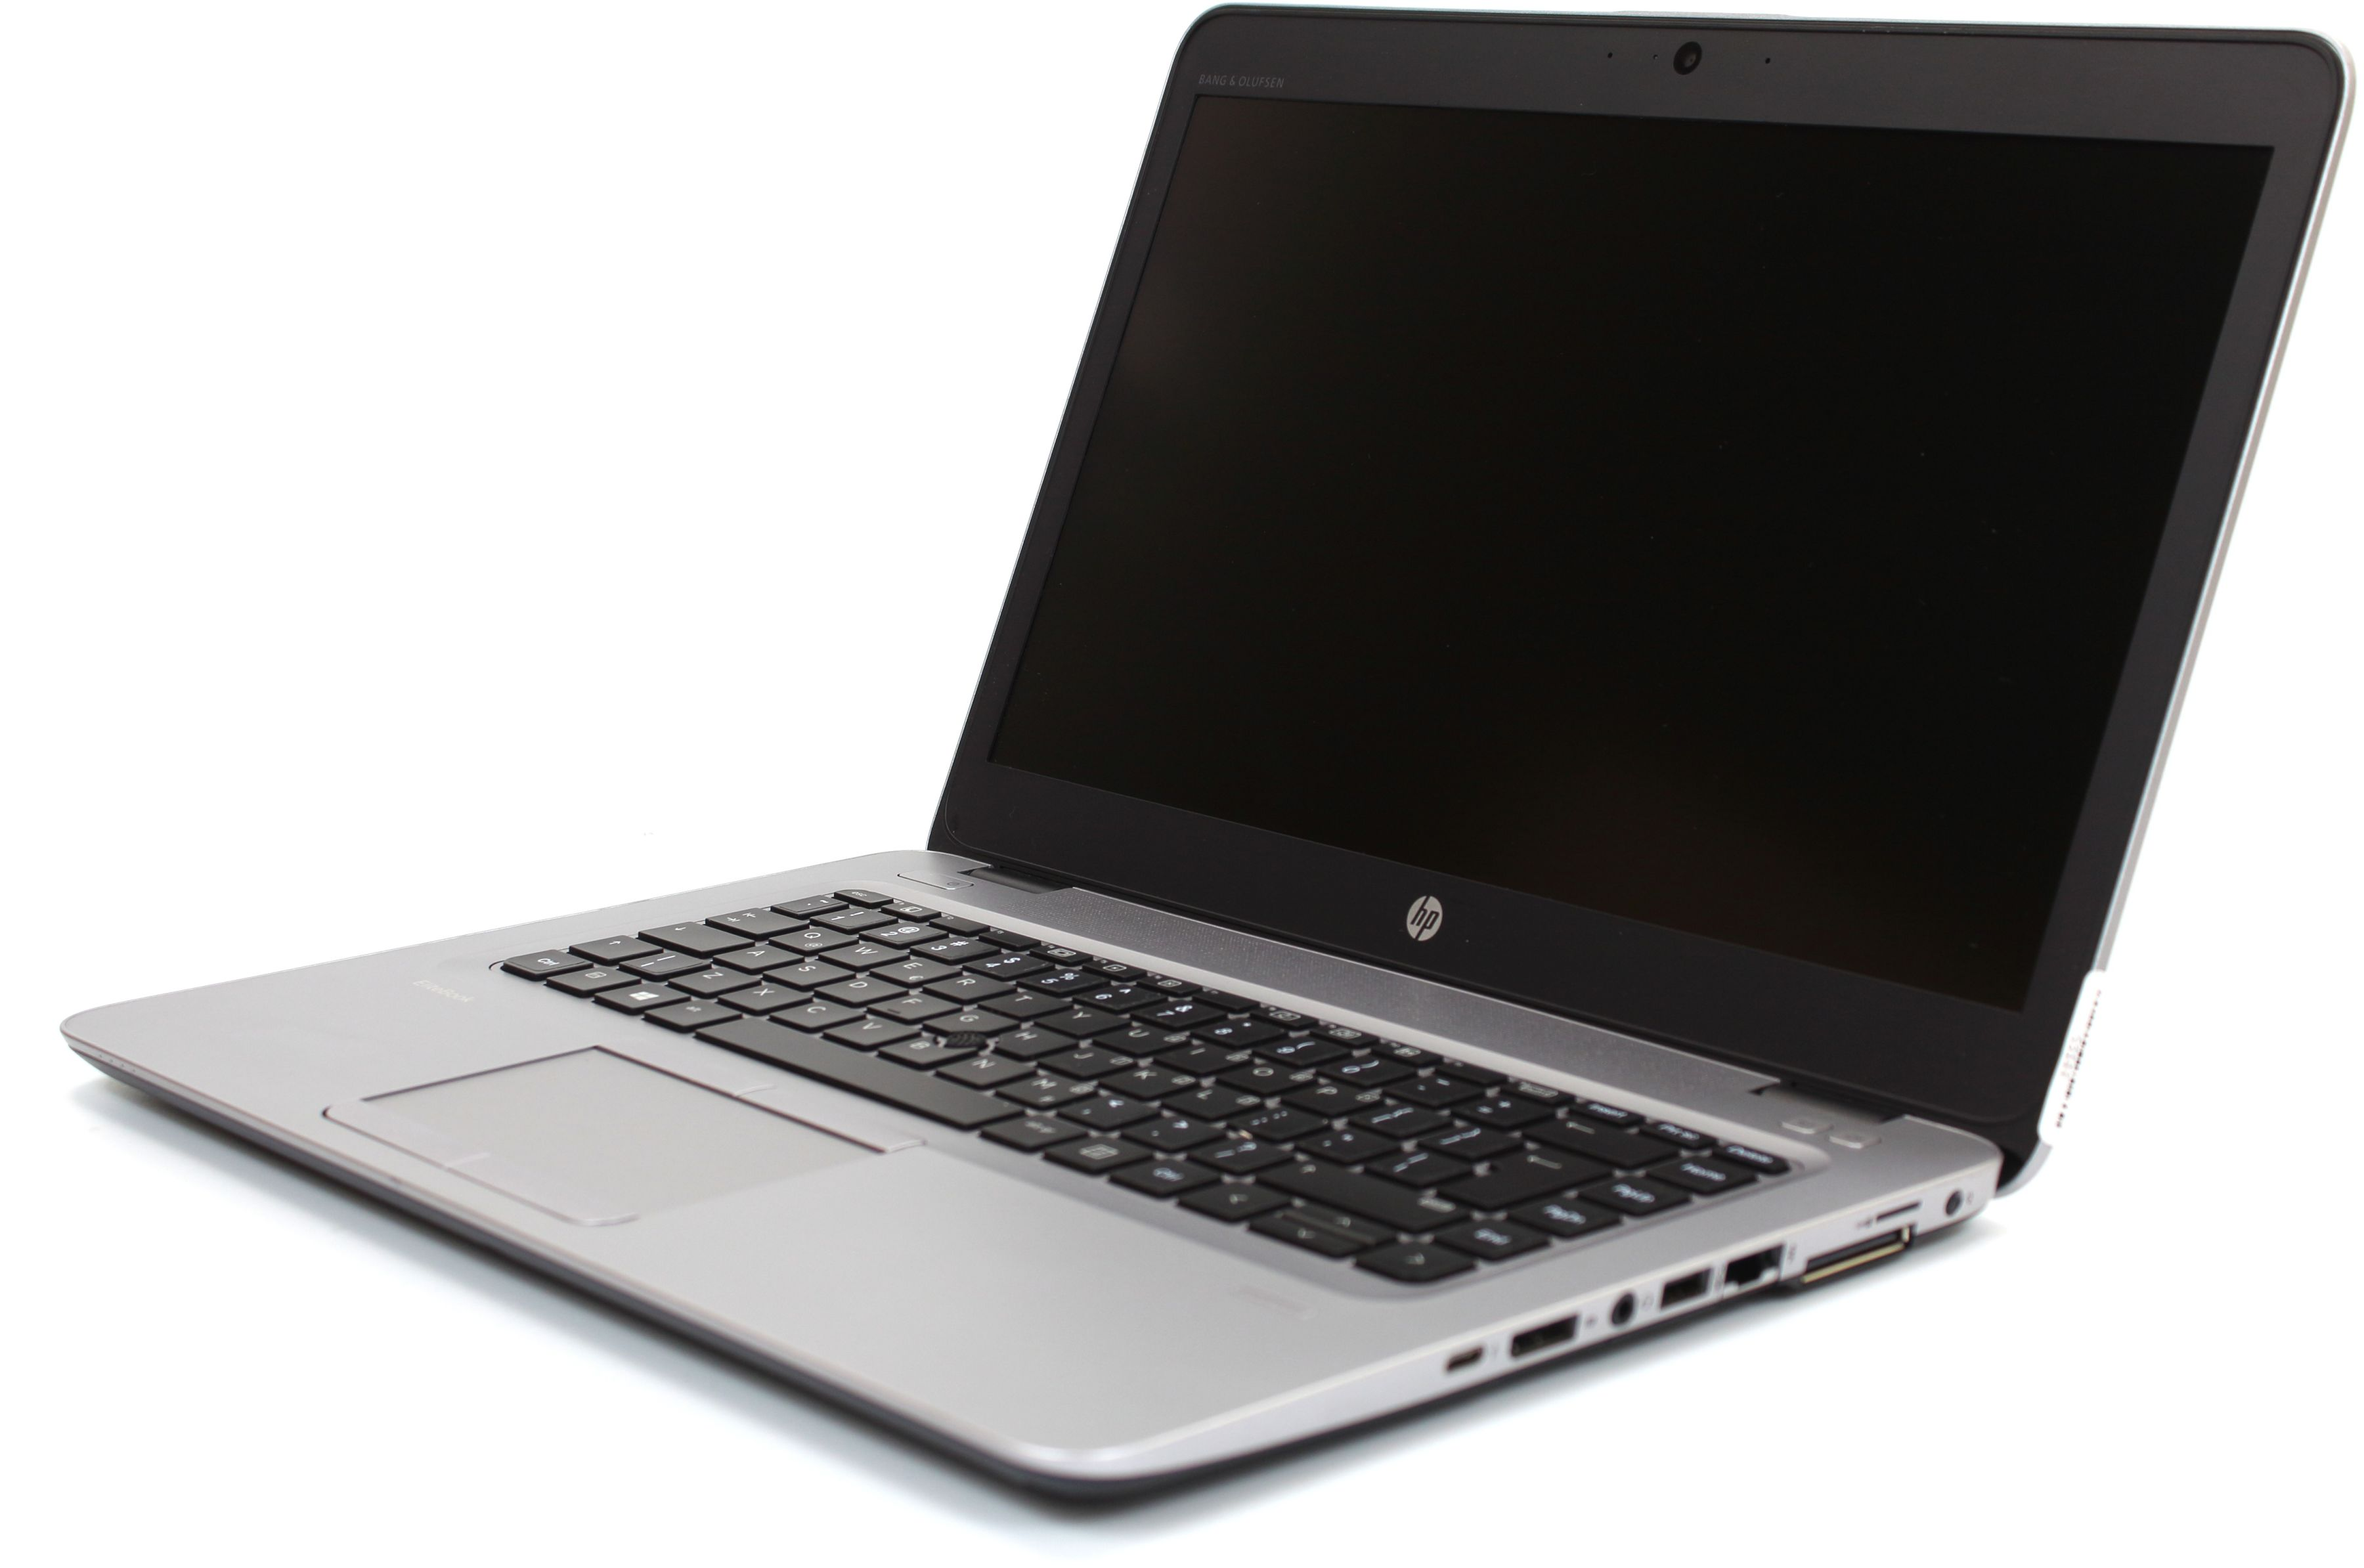 "UltraBook HP EliteBook 745 G4 14.1"" FHD A10-8730B 4x3.30GHz 8GB 256GB SSD KAMERA Windows 10 Pro (Klasa A-)"